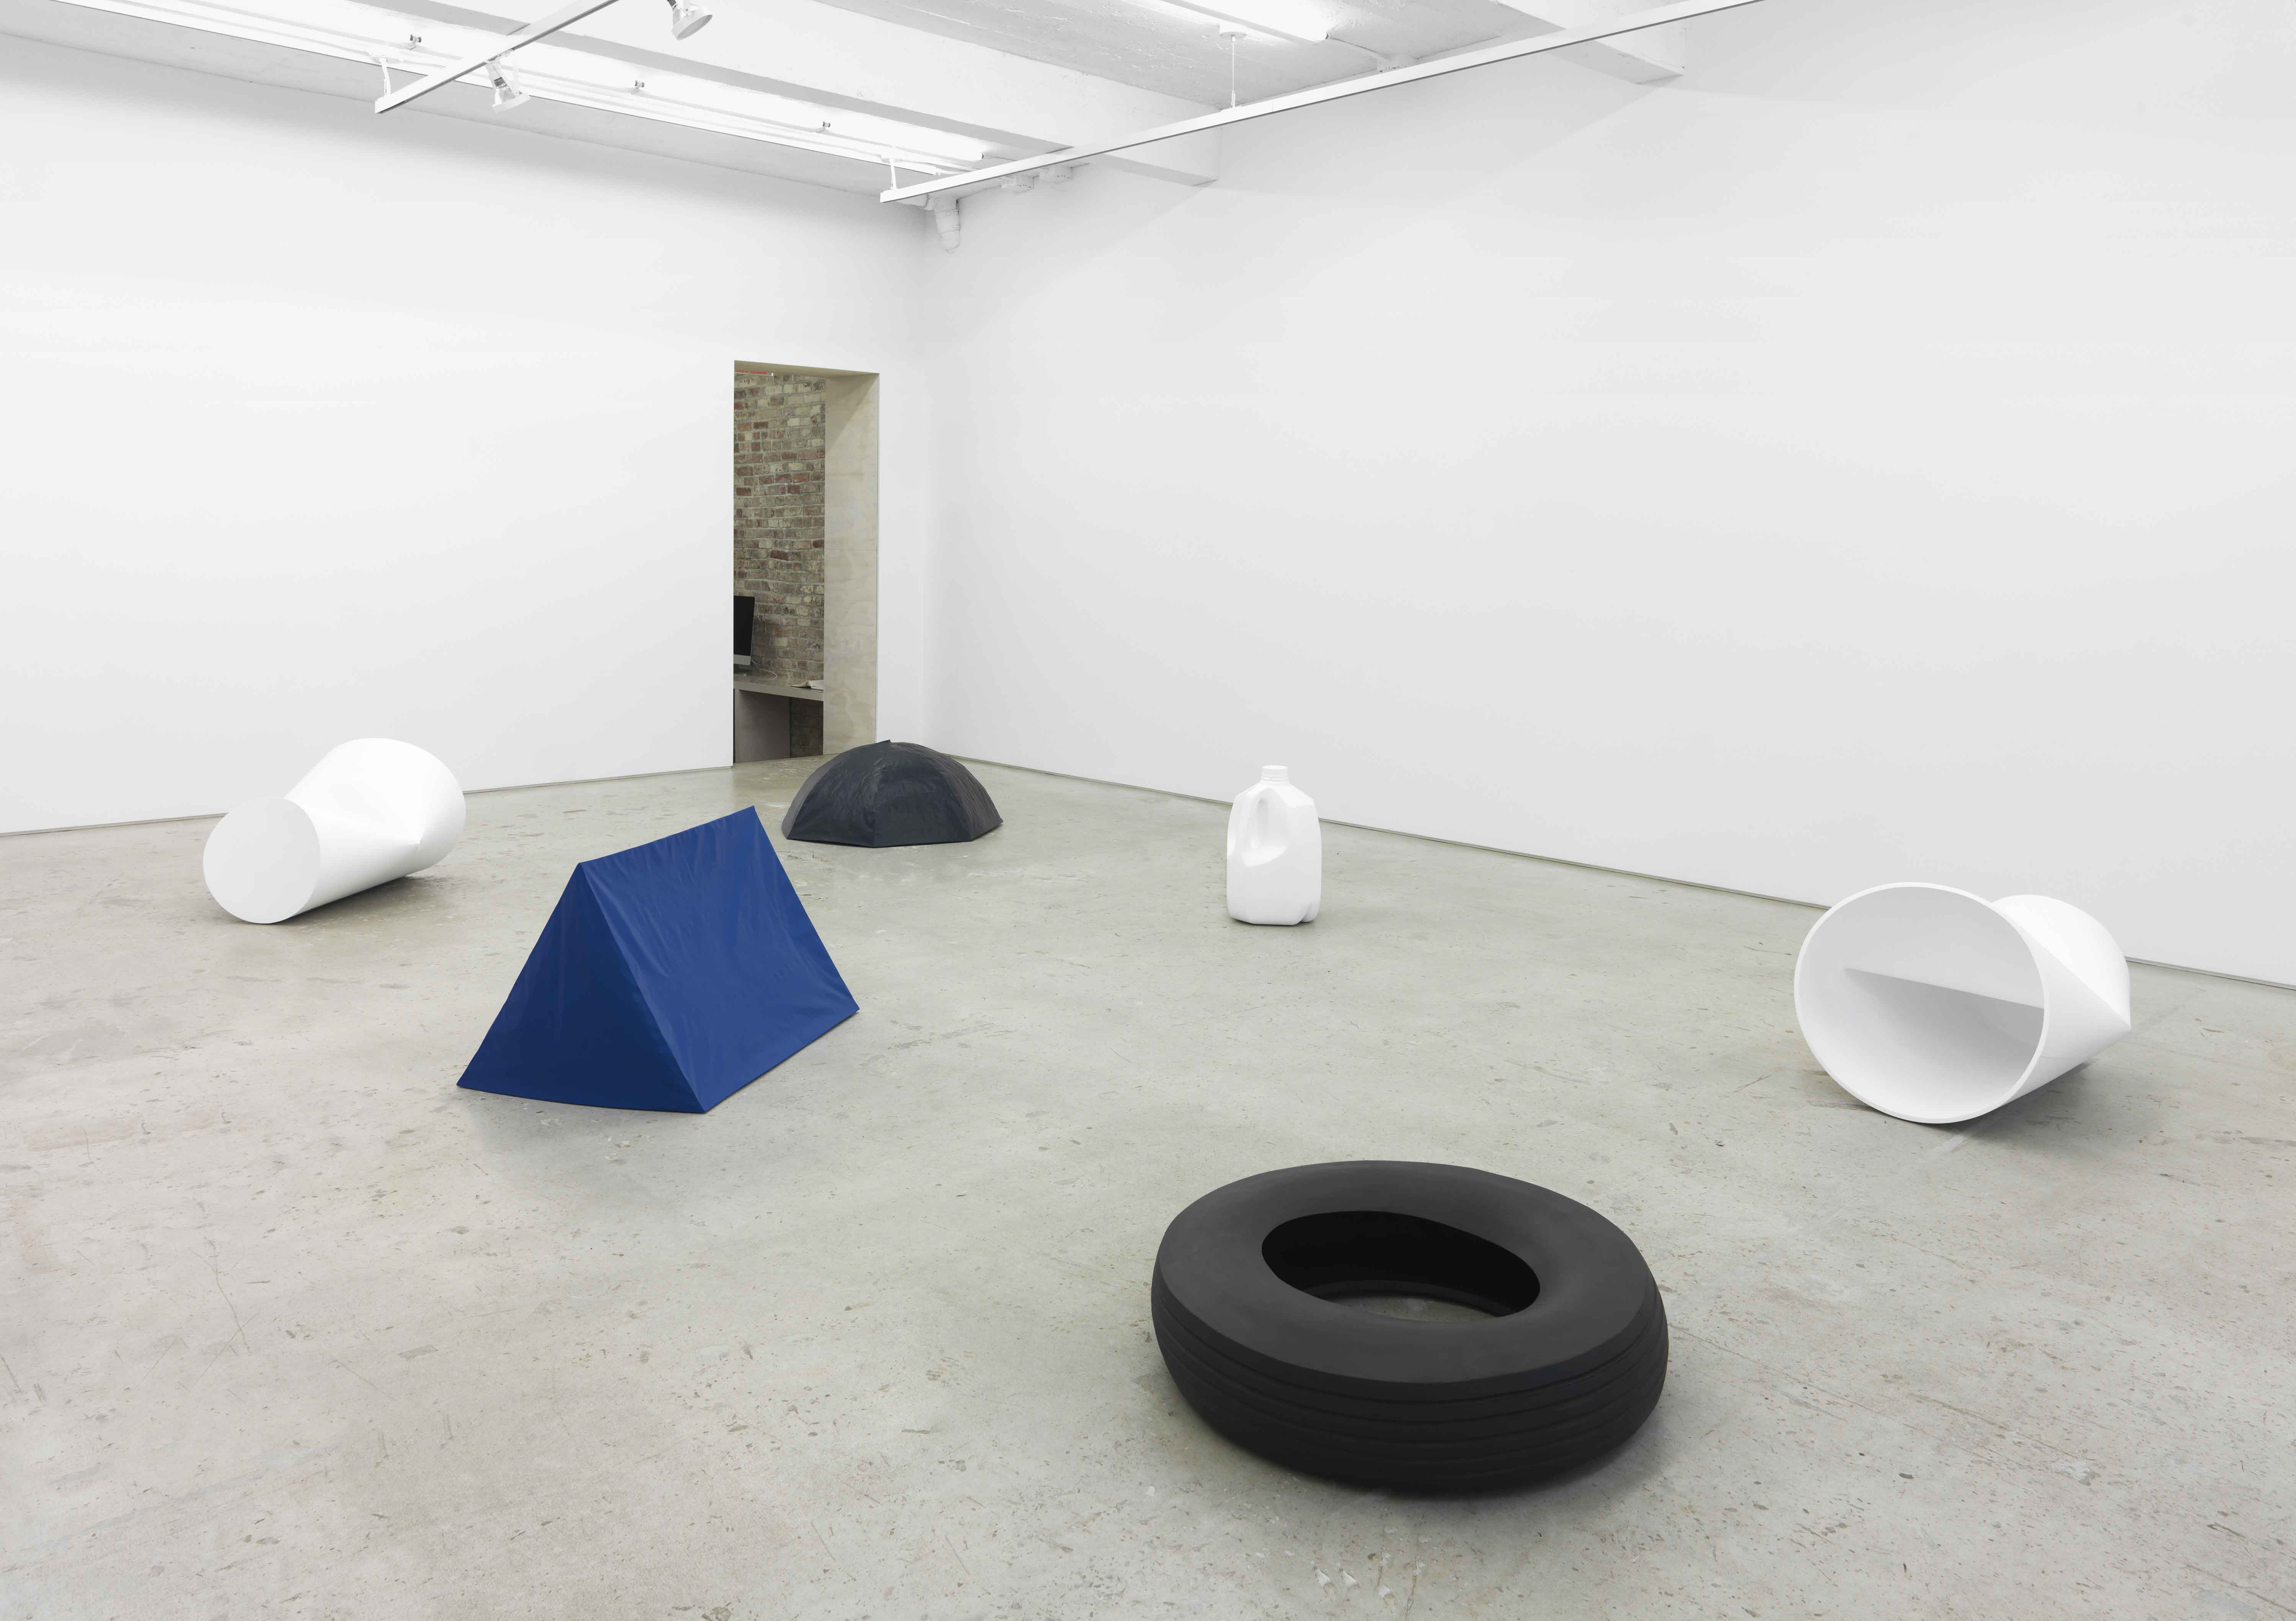 Installation view, No One's Things, Magenta Plains, New York, NY, 2018